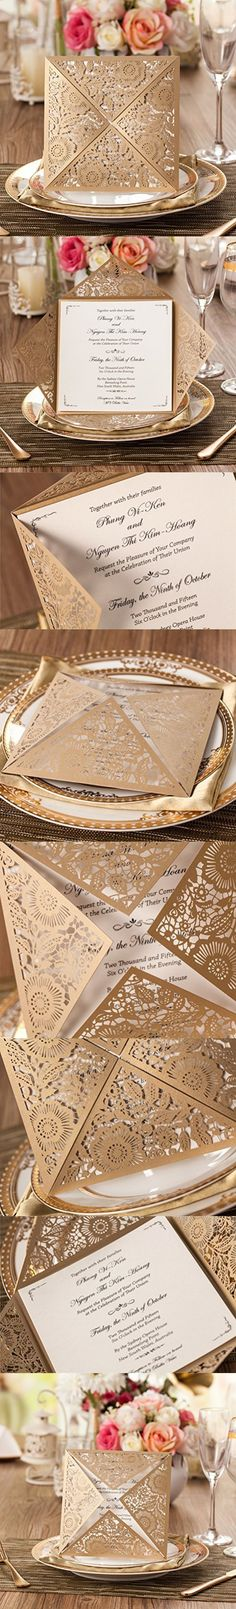 Wishmade 100X Gold Square Laser Cut Wedding Invitations Kit Card Stock For Engagement Bridal Shower Birthday Baby Shower Party CW520_GO